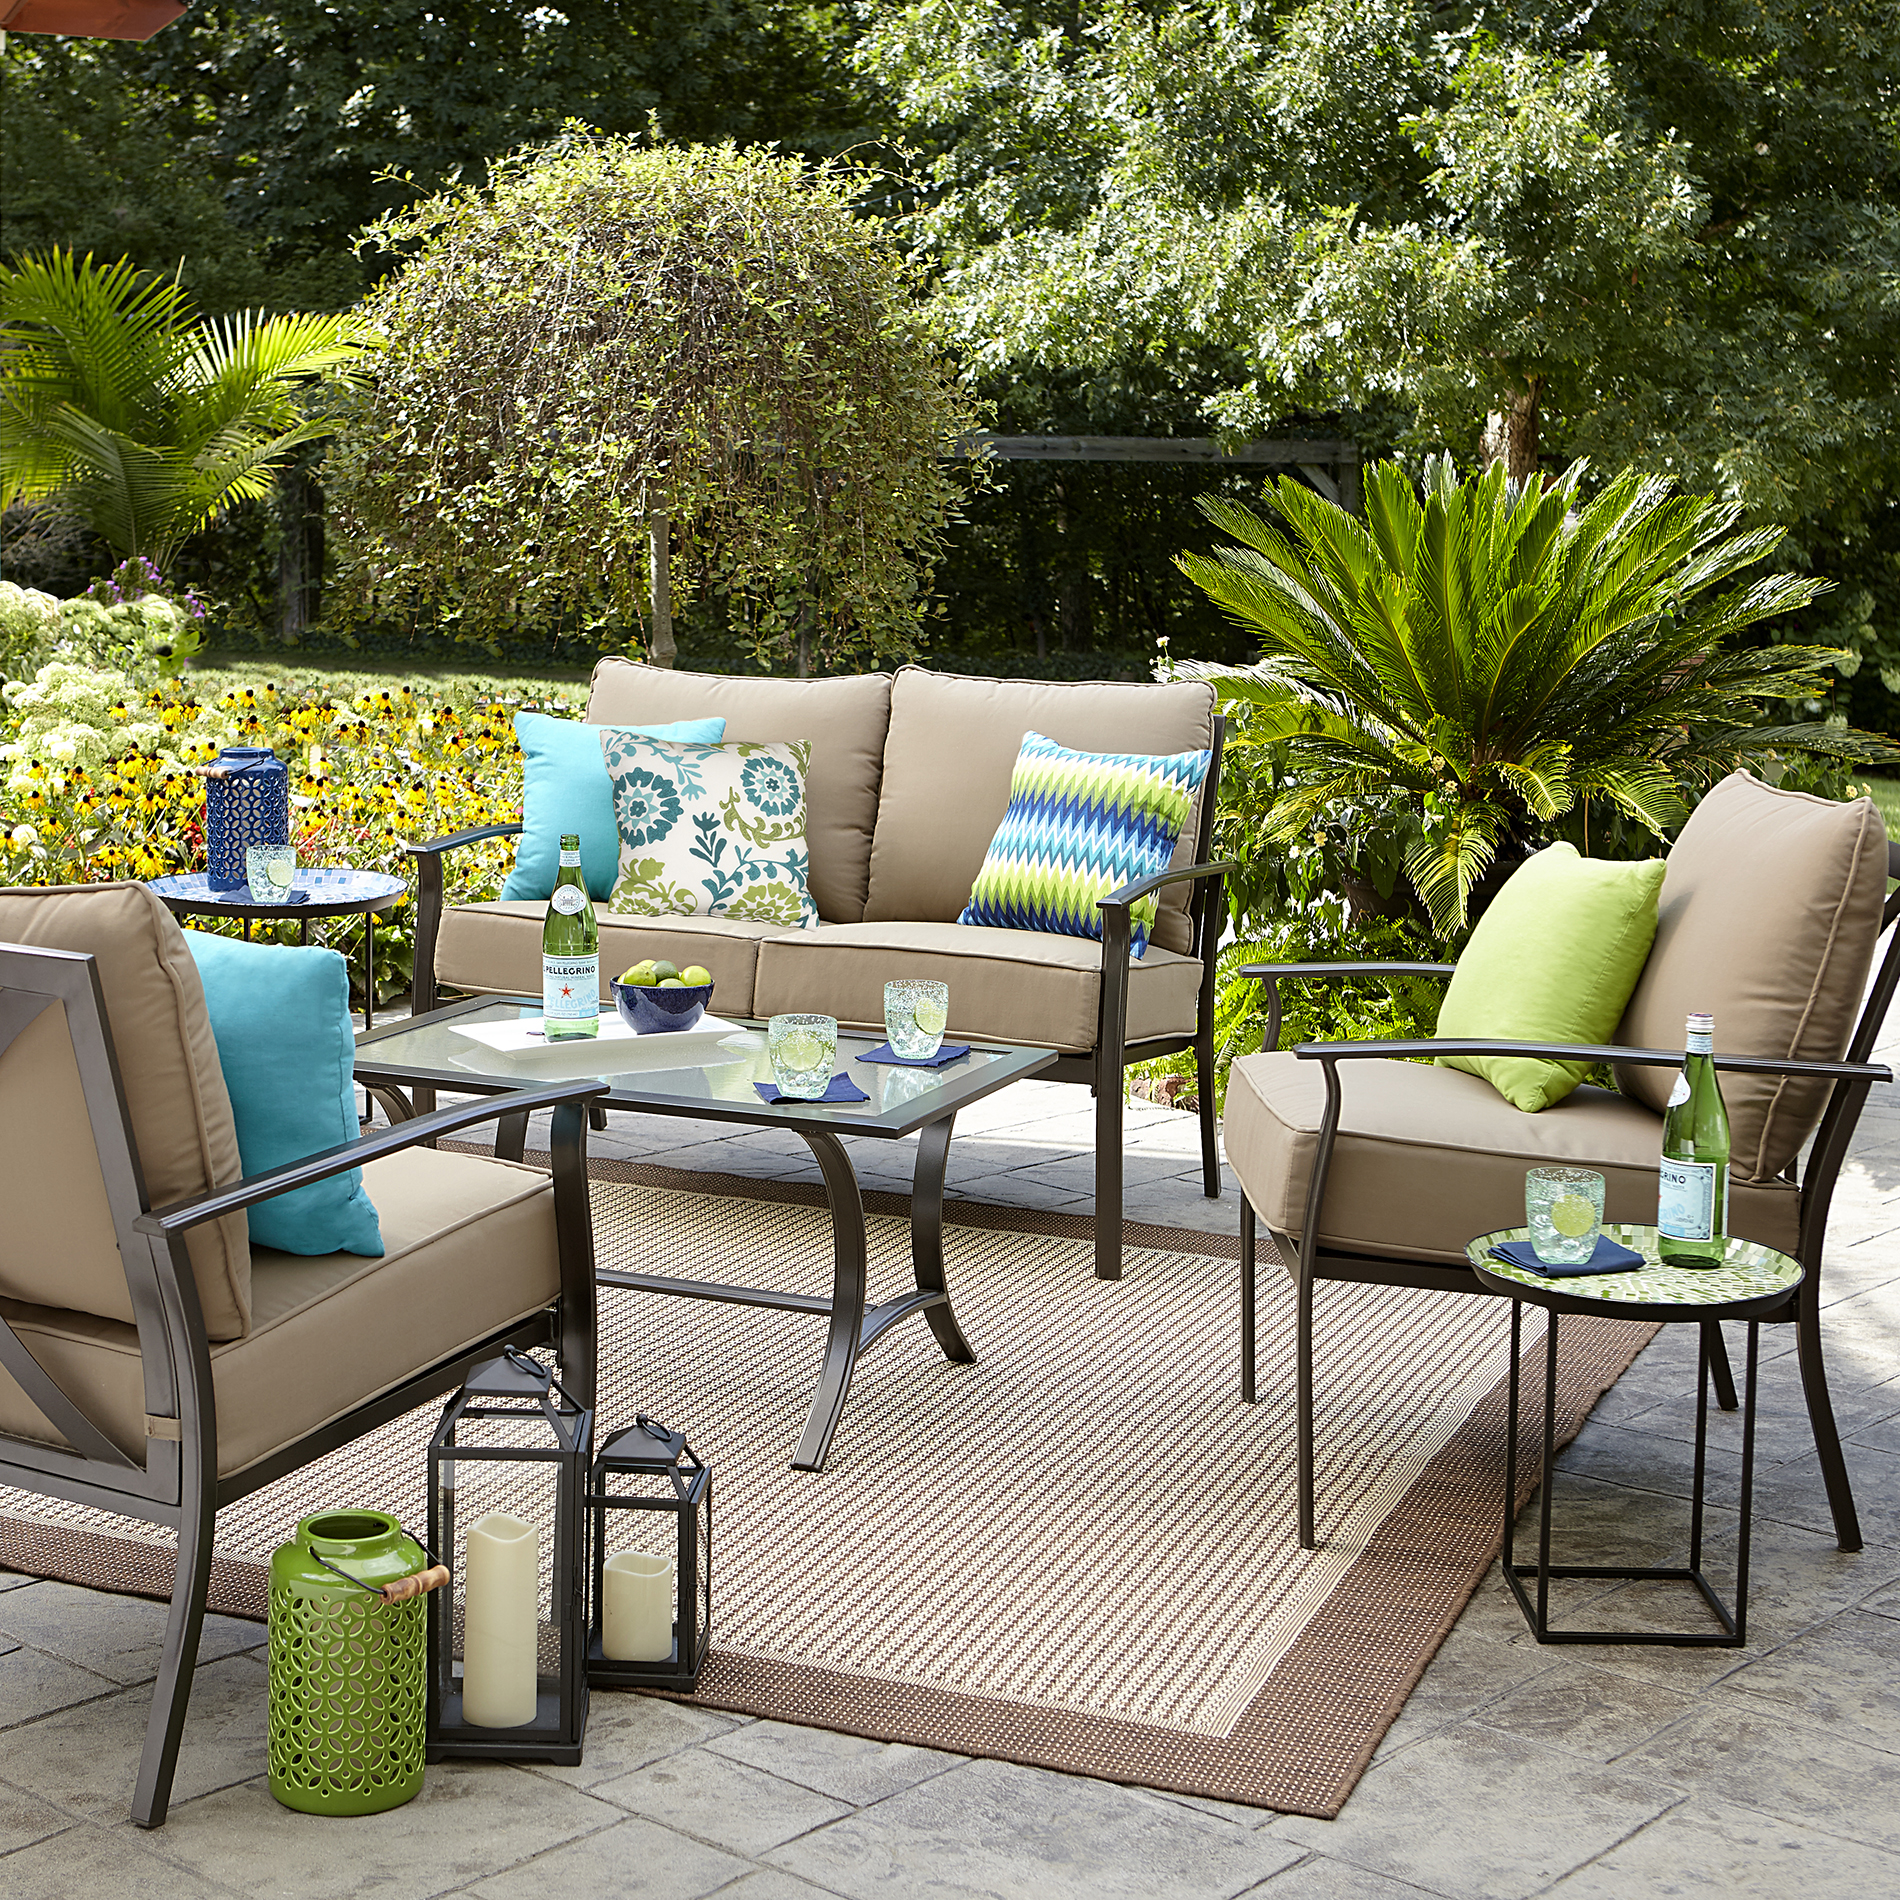 Garden Oasis Harrison 4 Pc. Glass-top Outdoor Seating Set